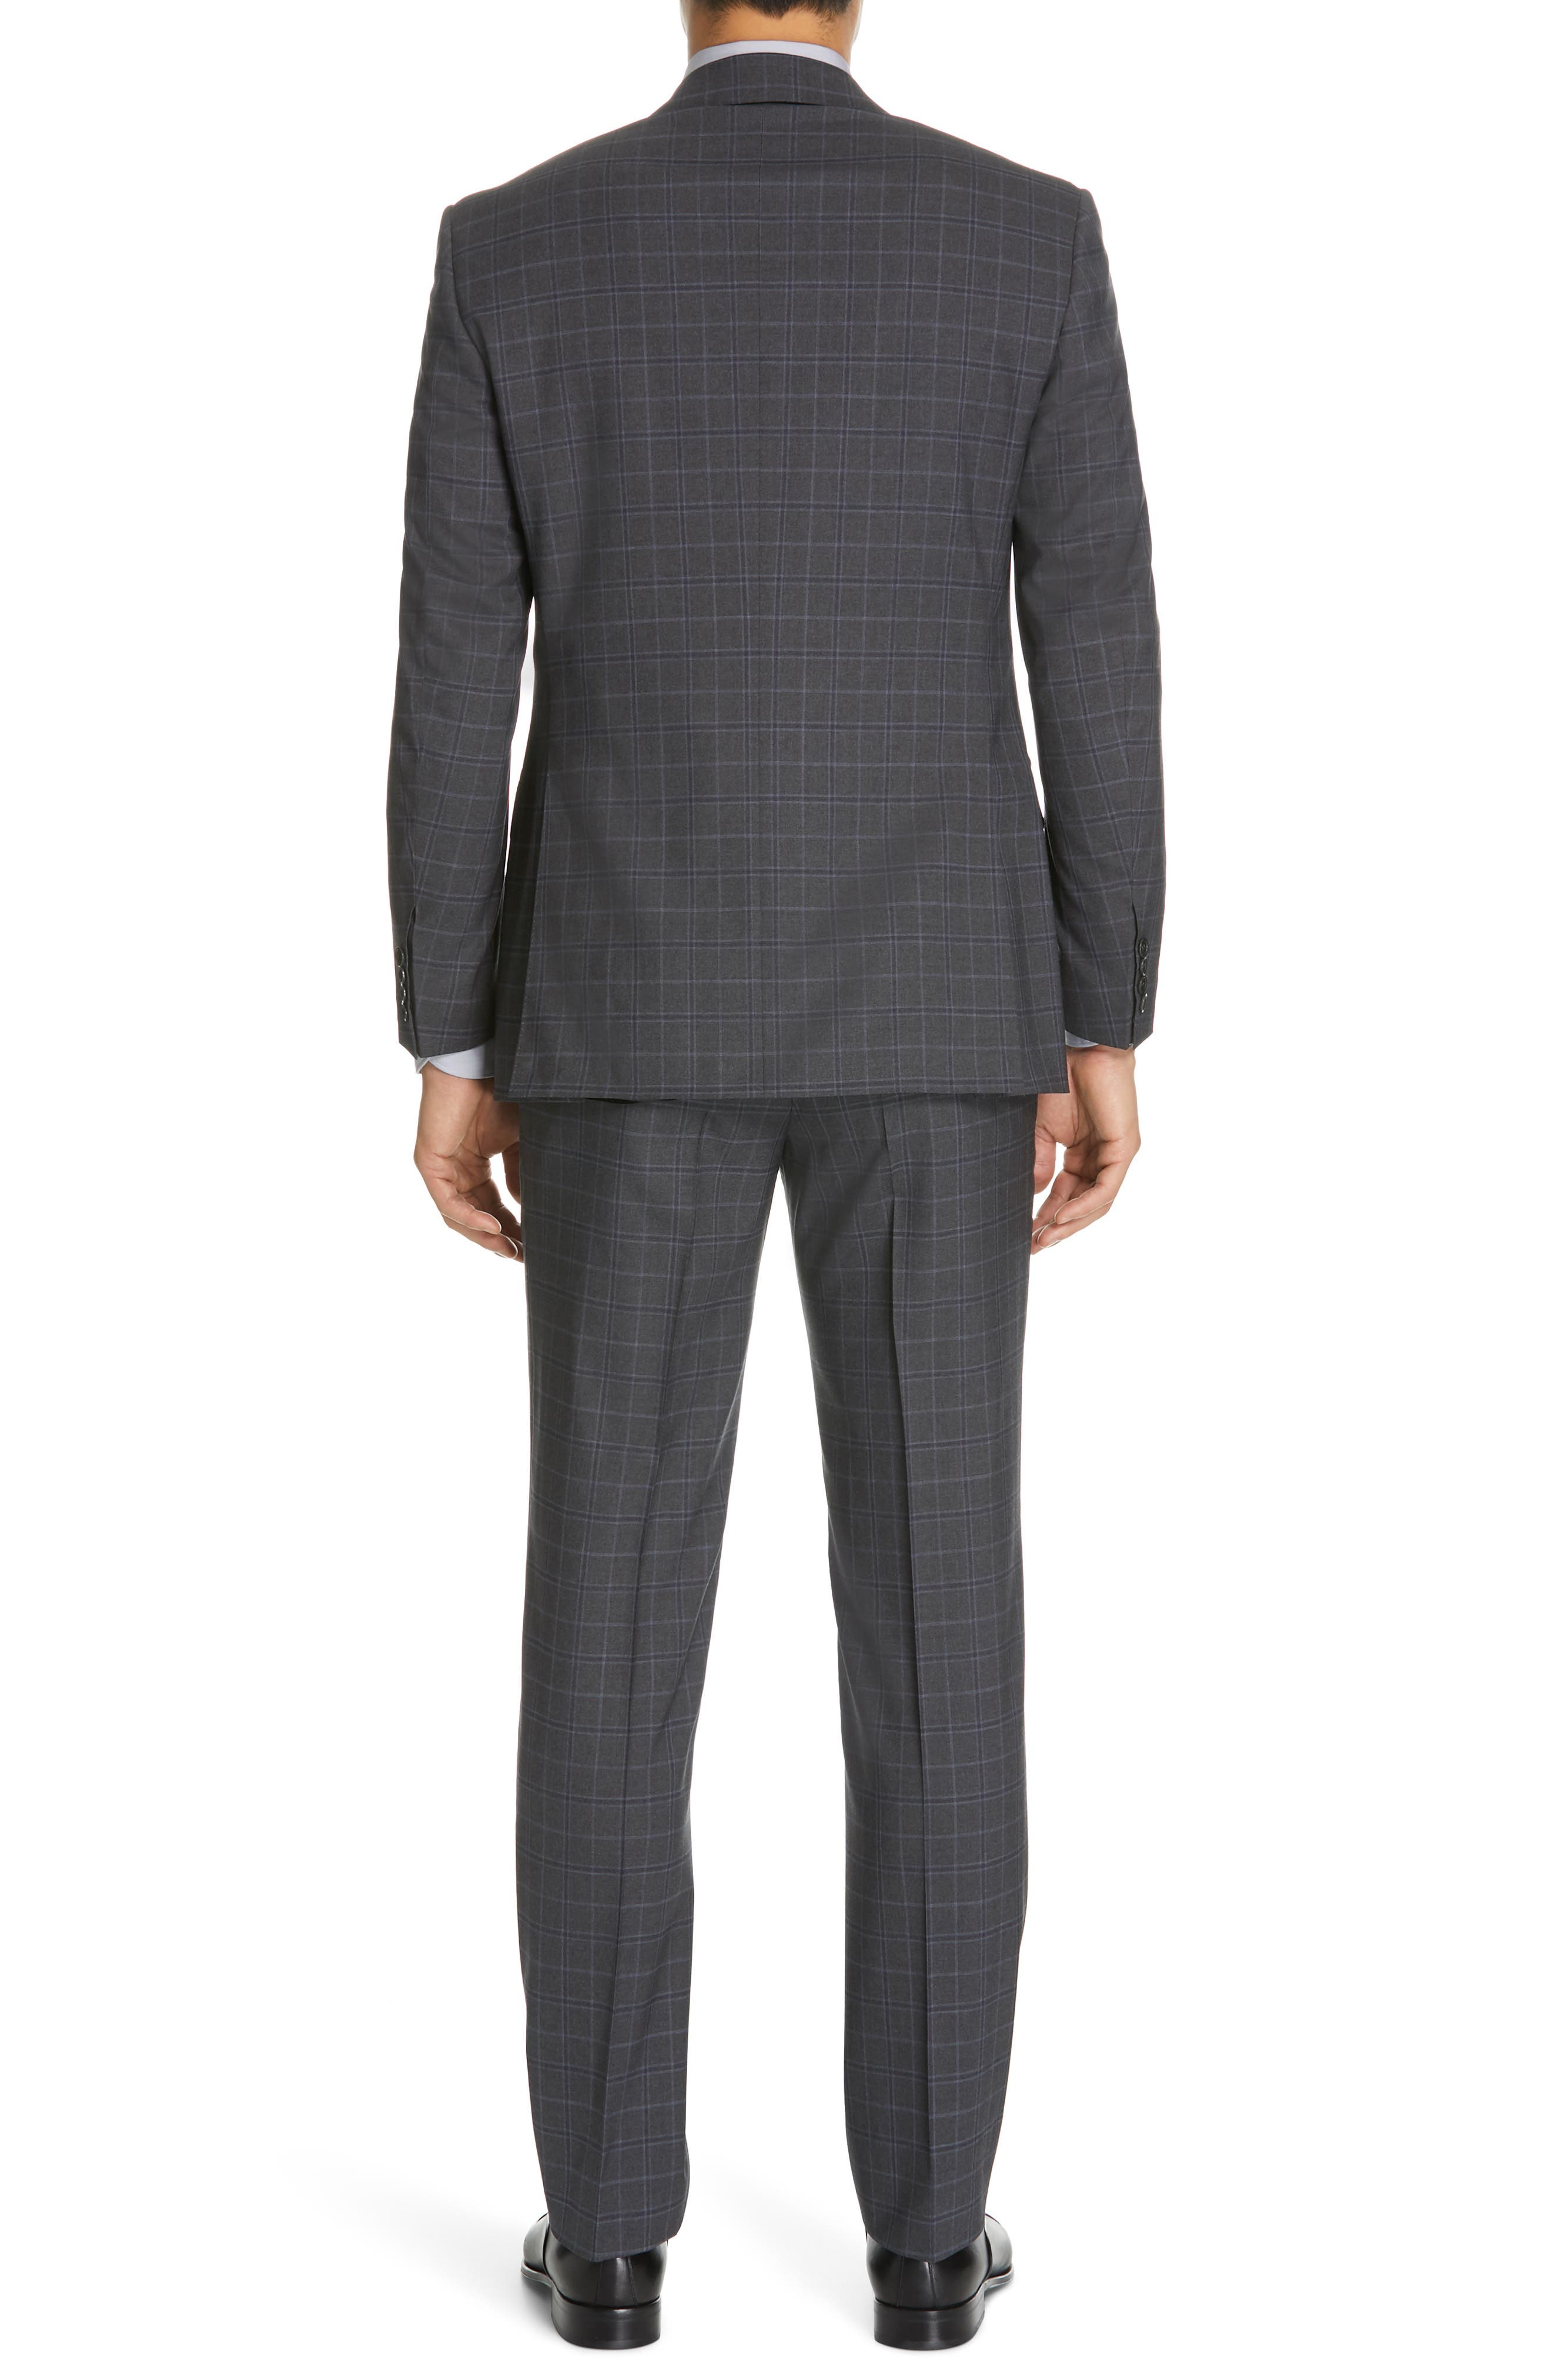 CANALI, Sienna Classic Fit Plaid Wool Suit, Alternate thumbnail 2, color, CHARCOAL